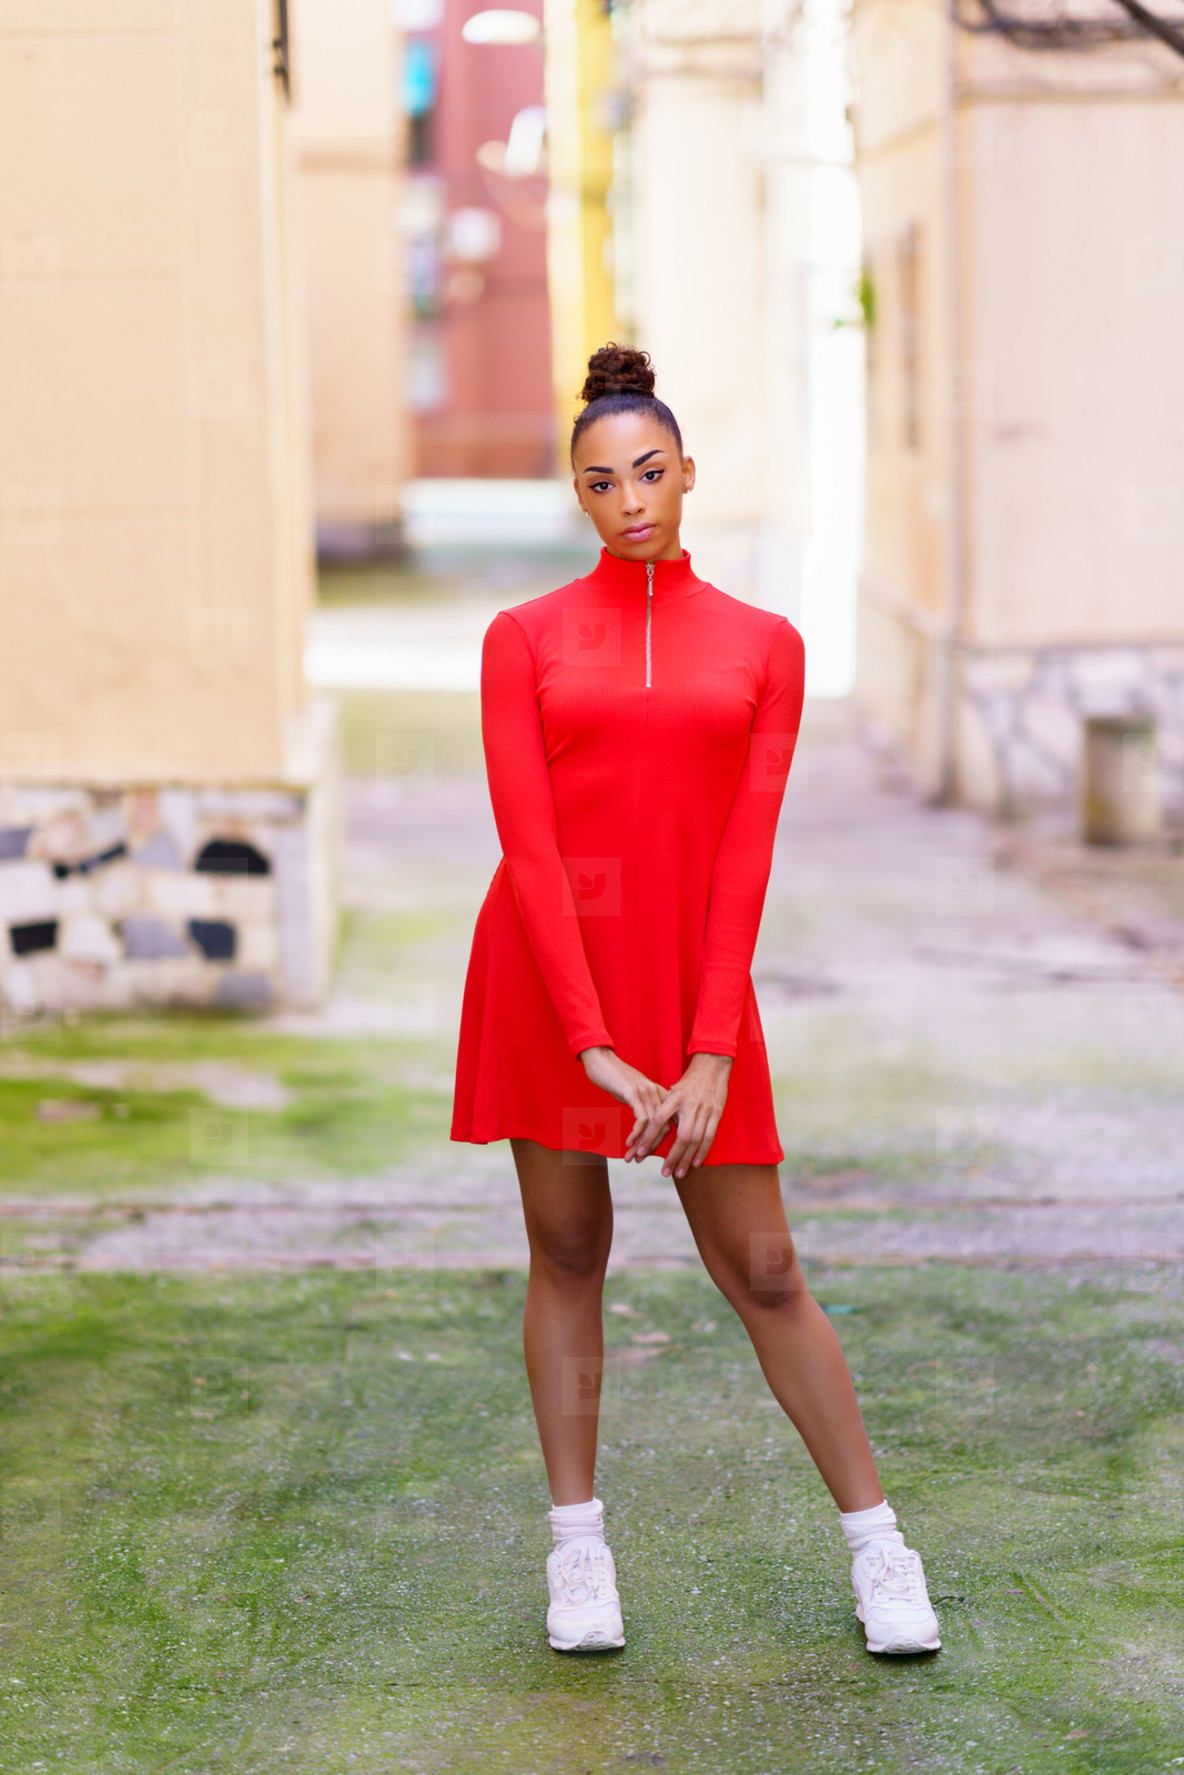 Young black woman in red dress posing on a street with colorful walls